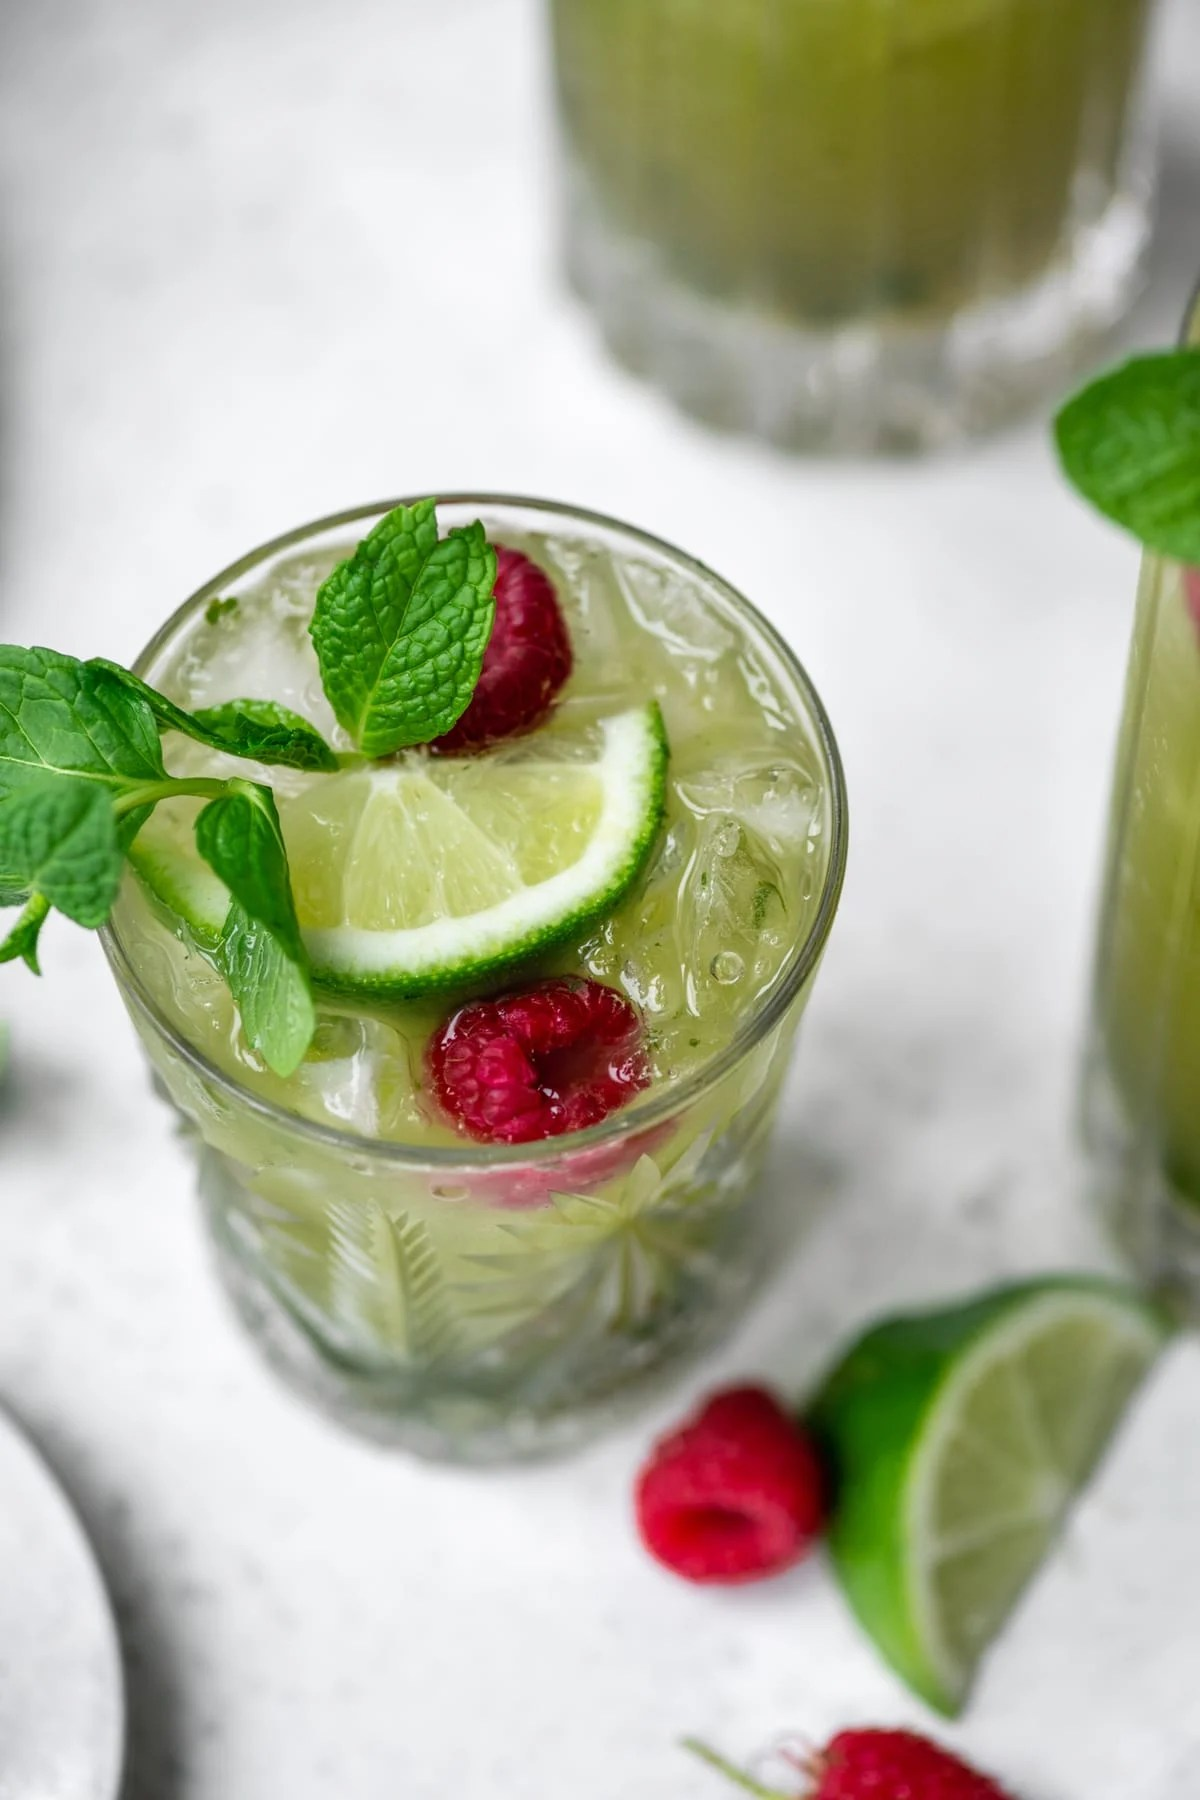 close up view of nonalcoholic matcha drink in glass with lime and mint